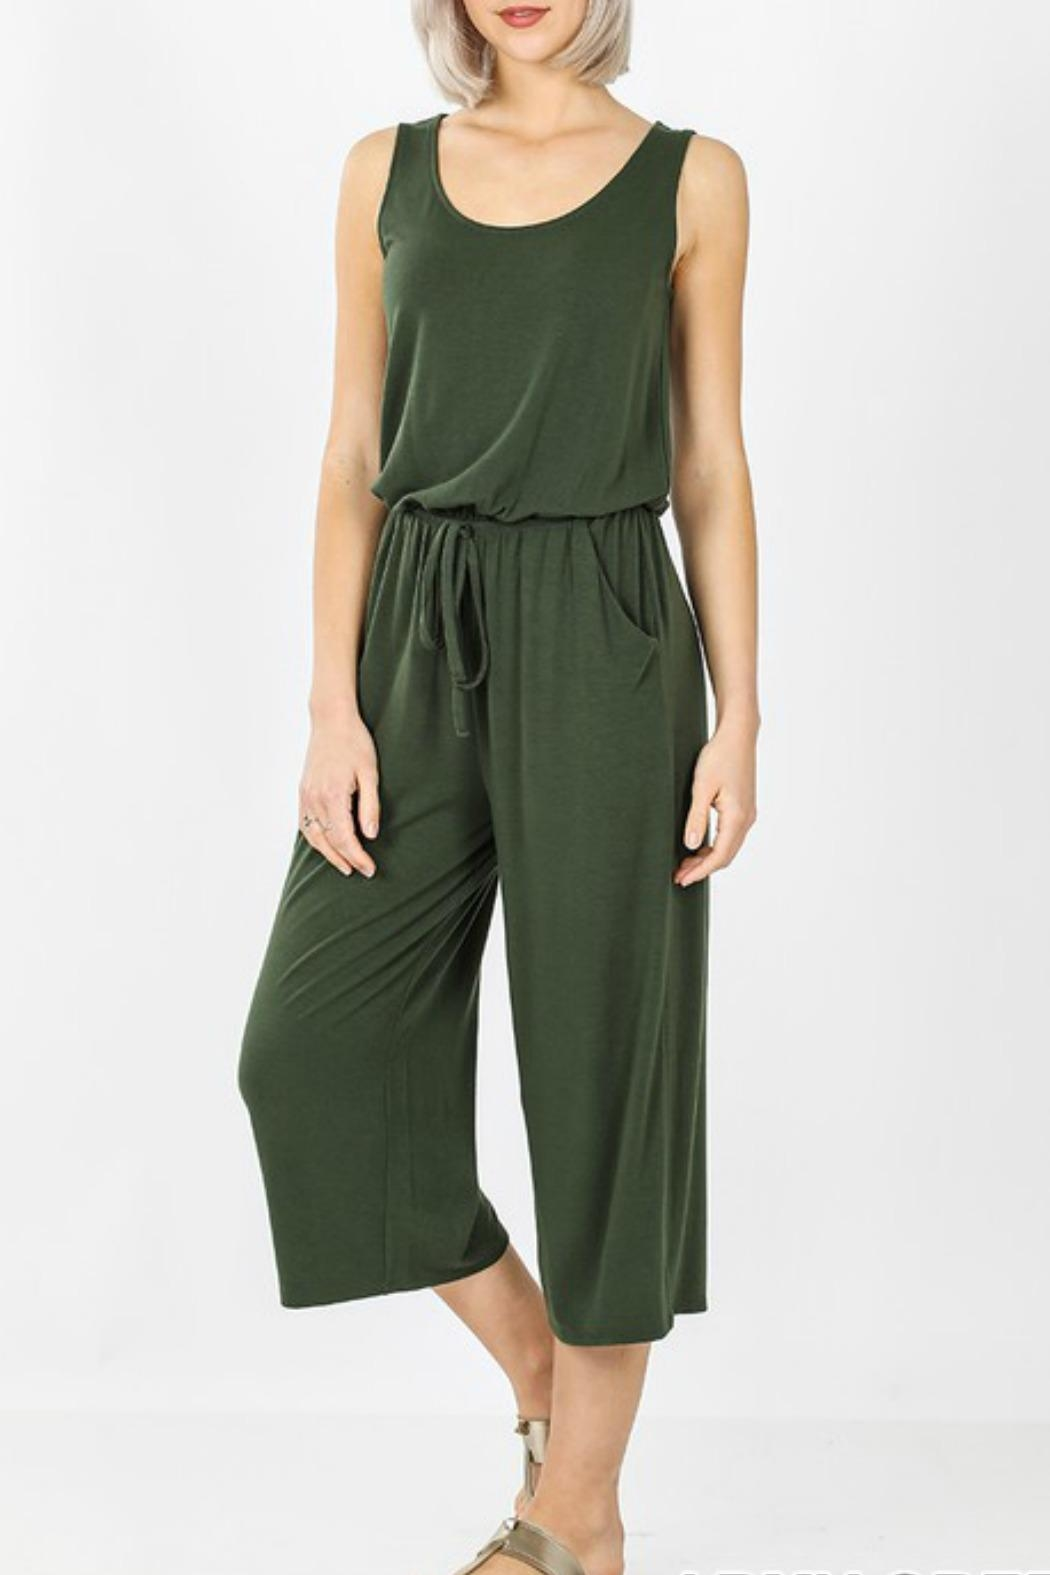 Zenana Dayna Knit Jumpsuit - Main Image